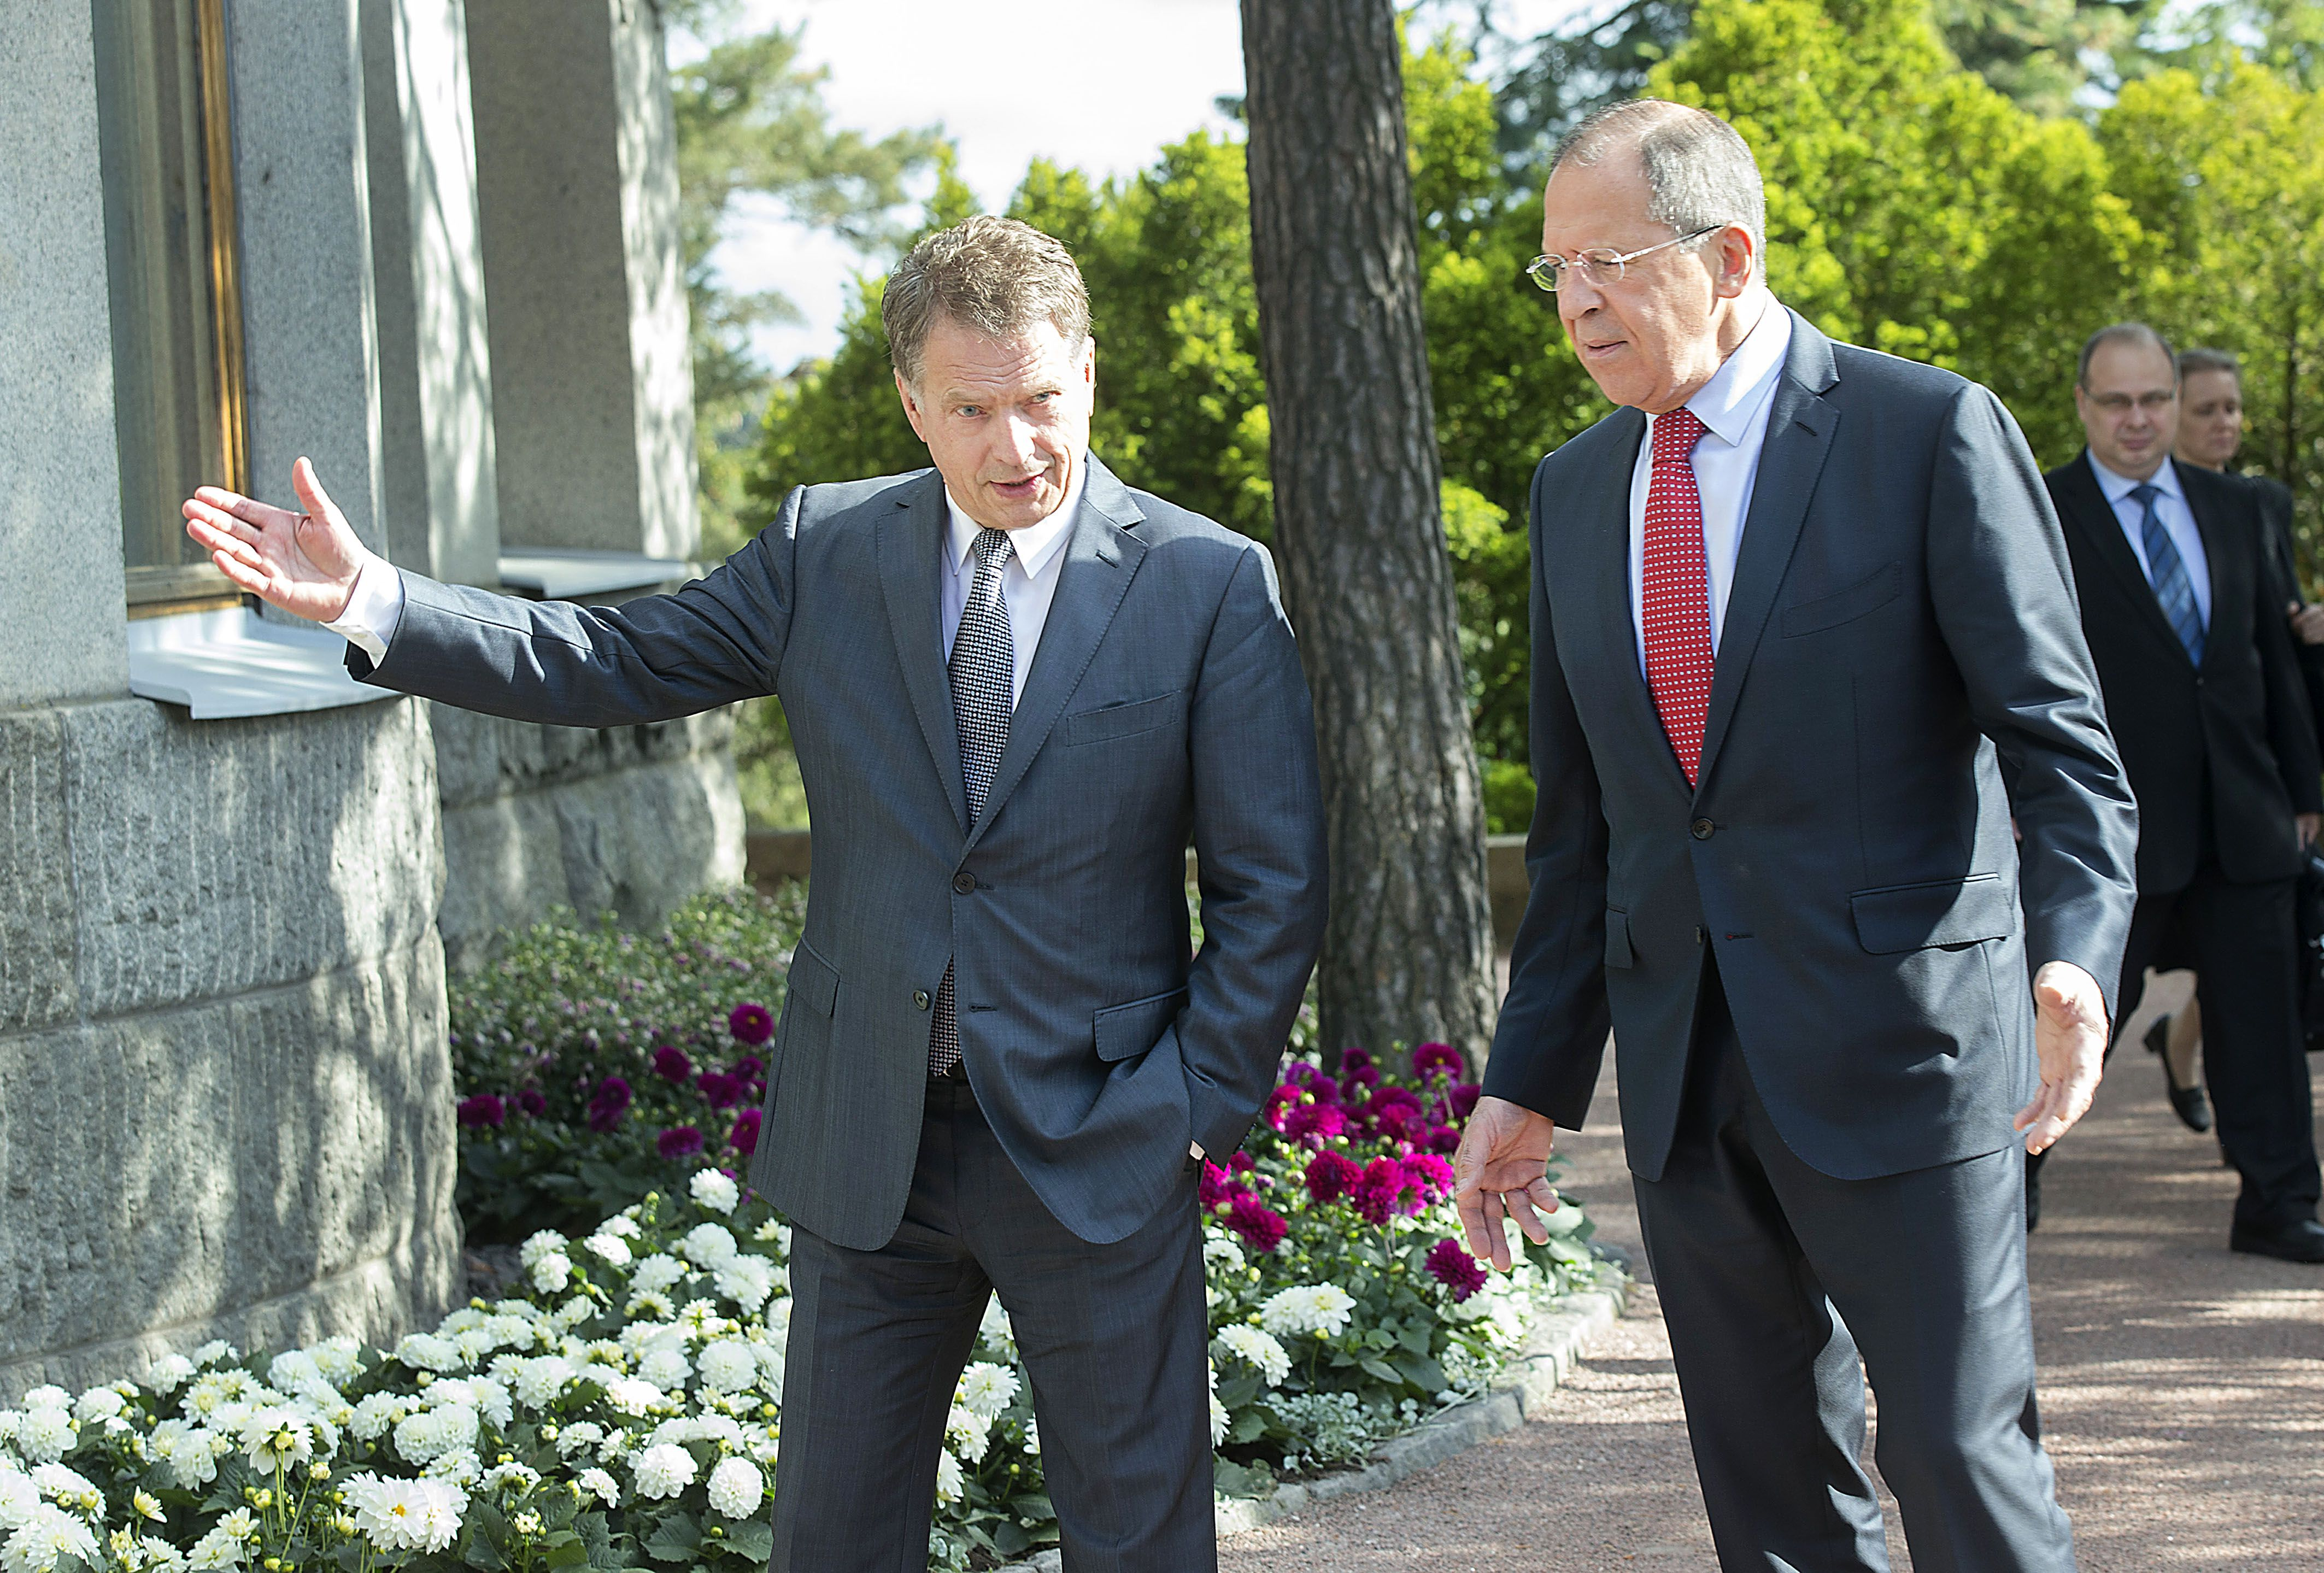 epa04247384 Sergei Lavrov, Foreign Minister of Russian talks with Finland President Sauli Niinistoe at the Presidential Summer house Kultaranta in Naantali Finland, 10 June 2014. The meeting will focus on the situation in Ukraine and other current international issues, including relations between the EU and Russia. The Ministers will also discuss bilateral issues between Finland and Russia as well as regional cooperation, Finland.  EPA/MAURI RATILAINEN FINLAND OUT